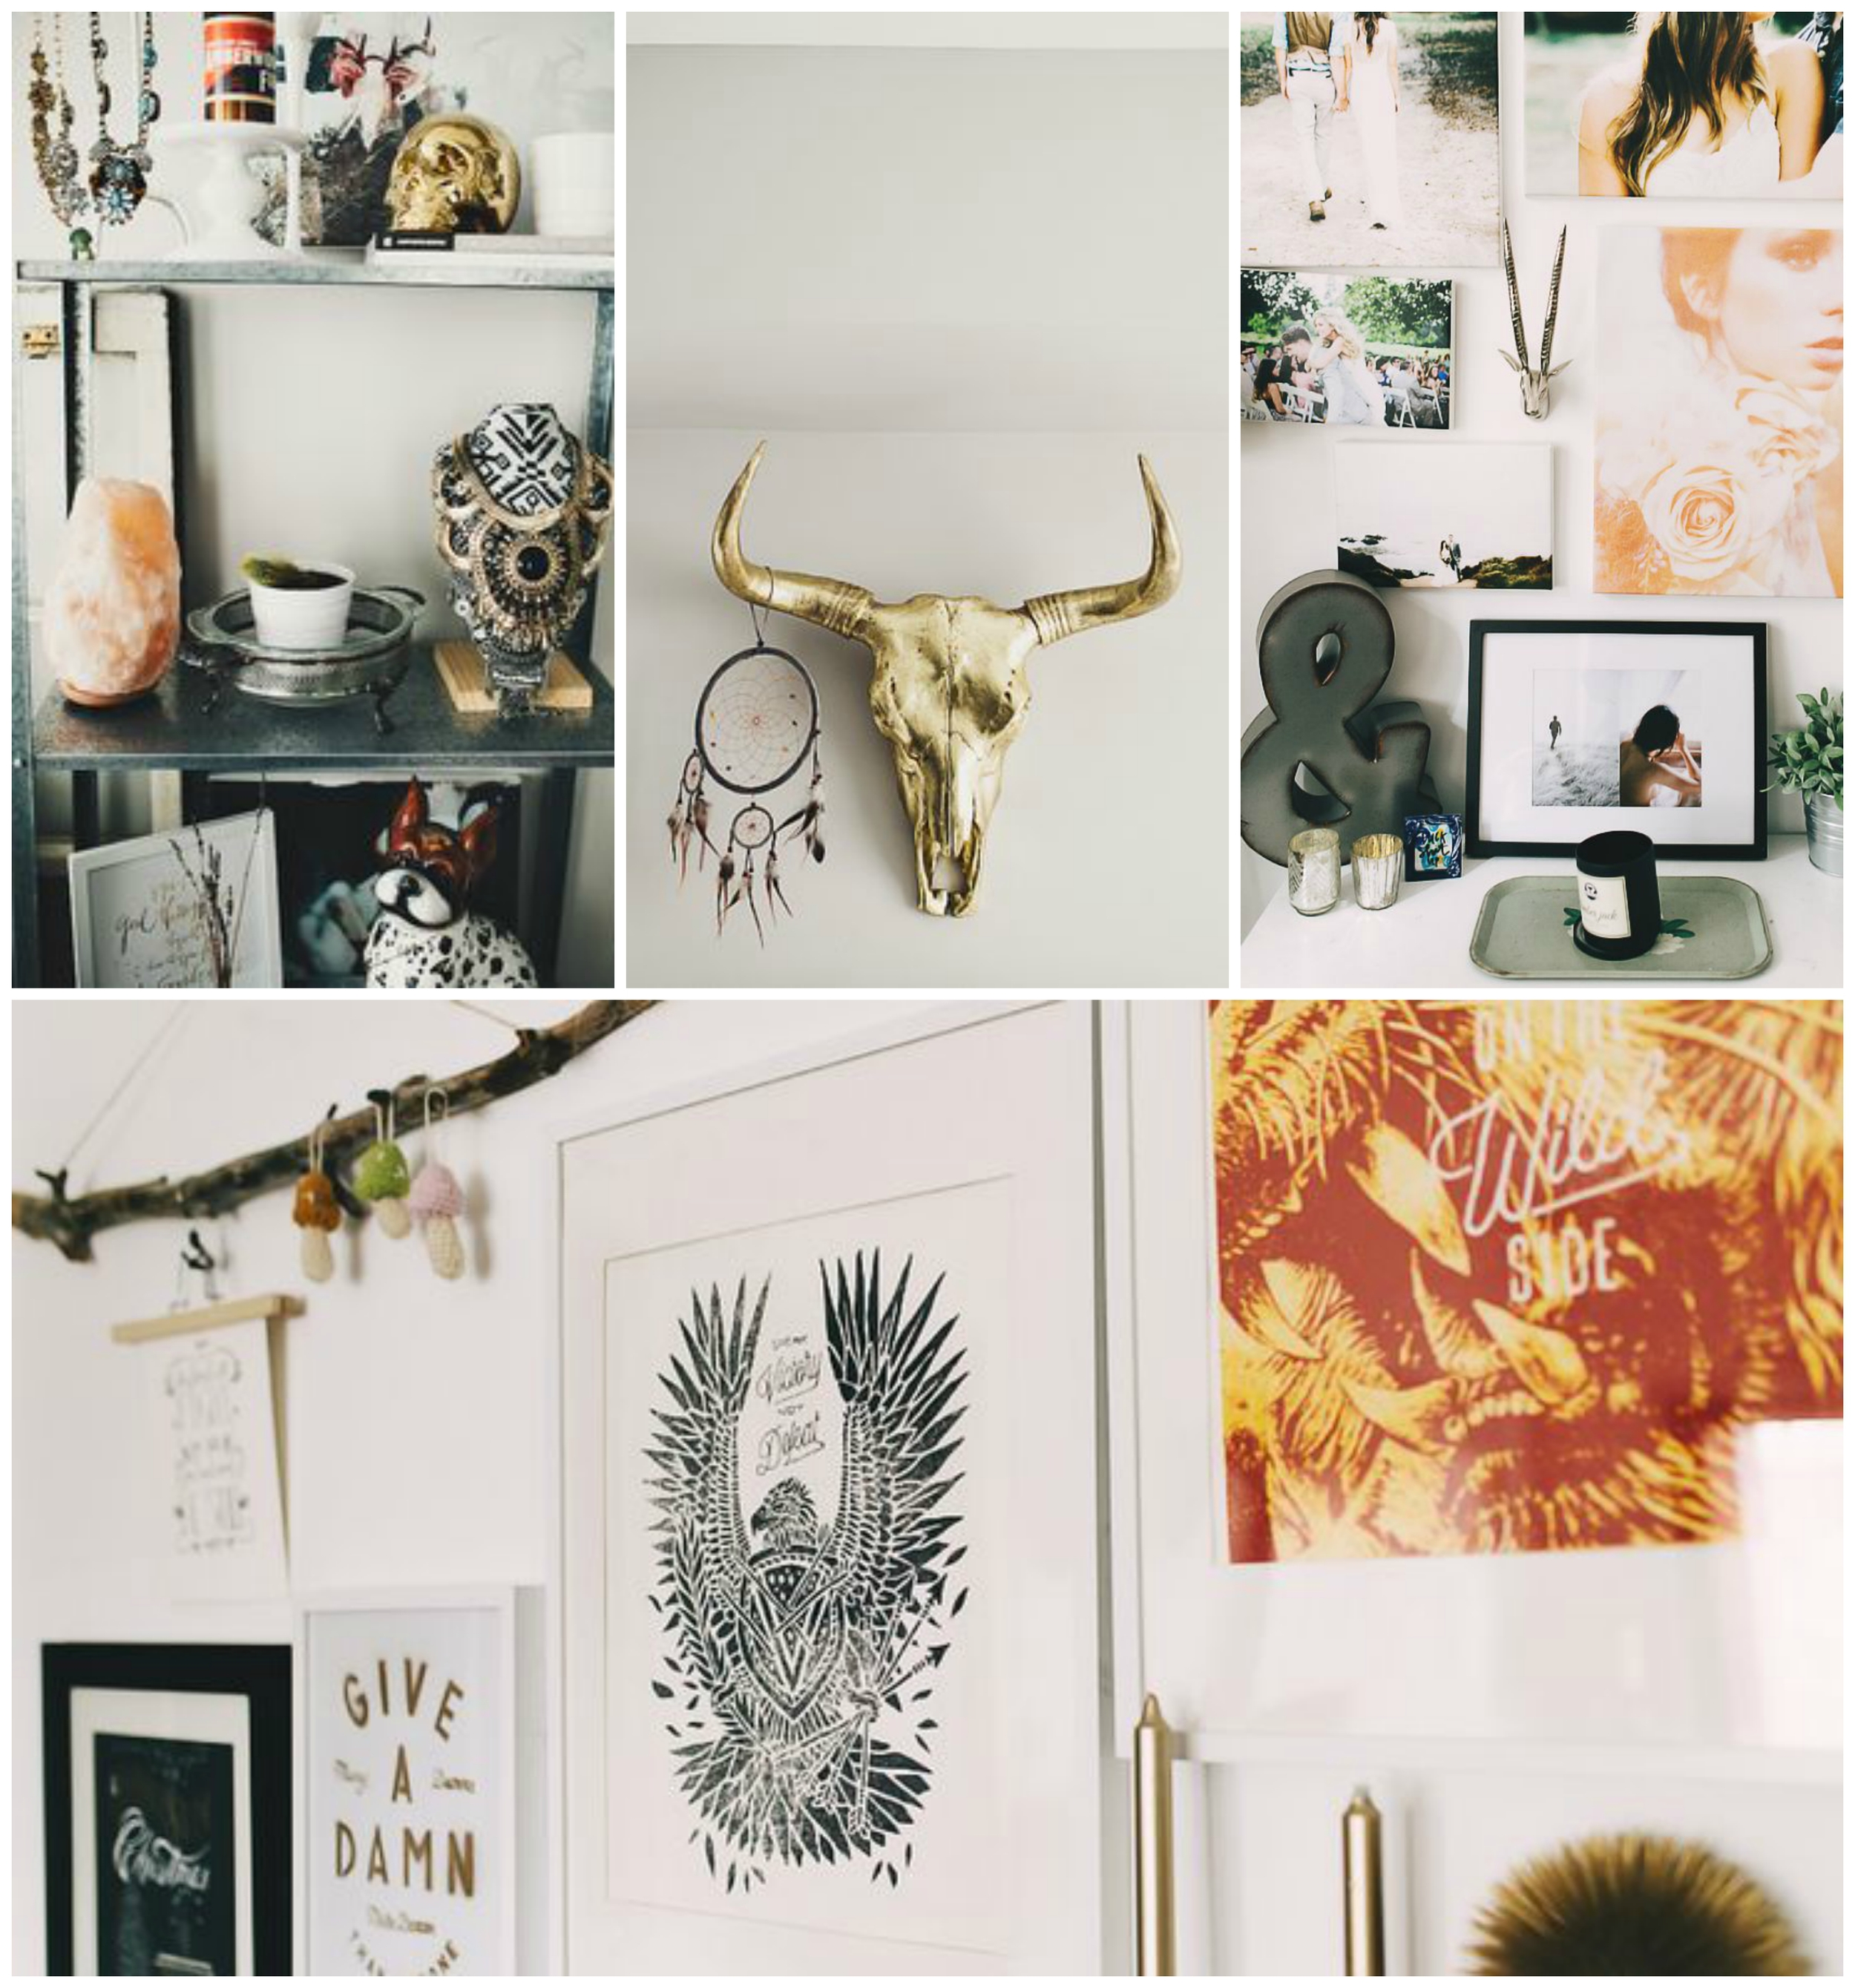 a little glimpse into my apartment & inspiration. bottom art is all by joshua noom.